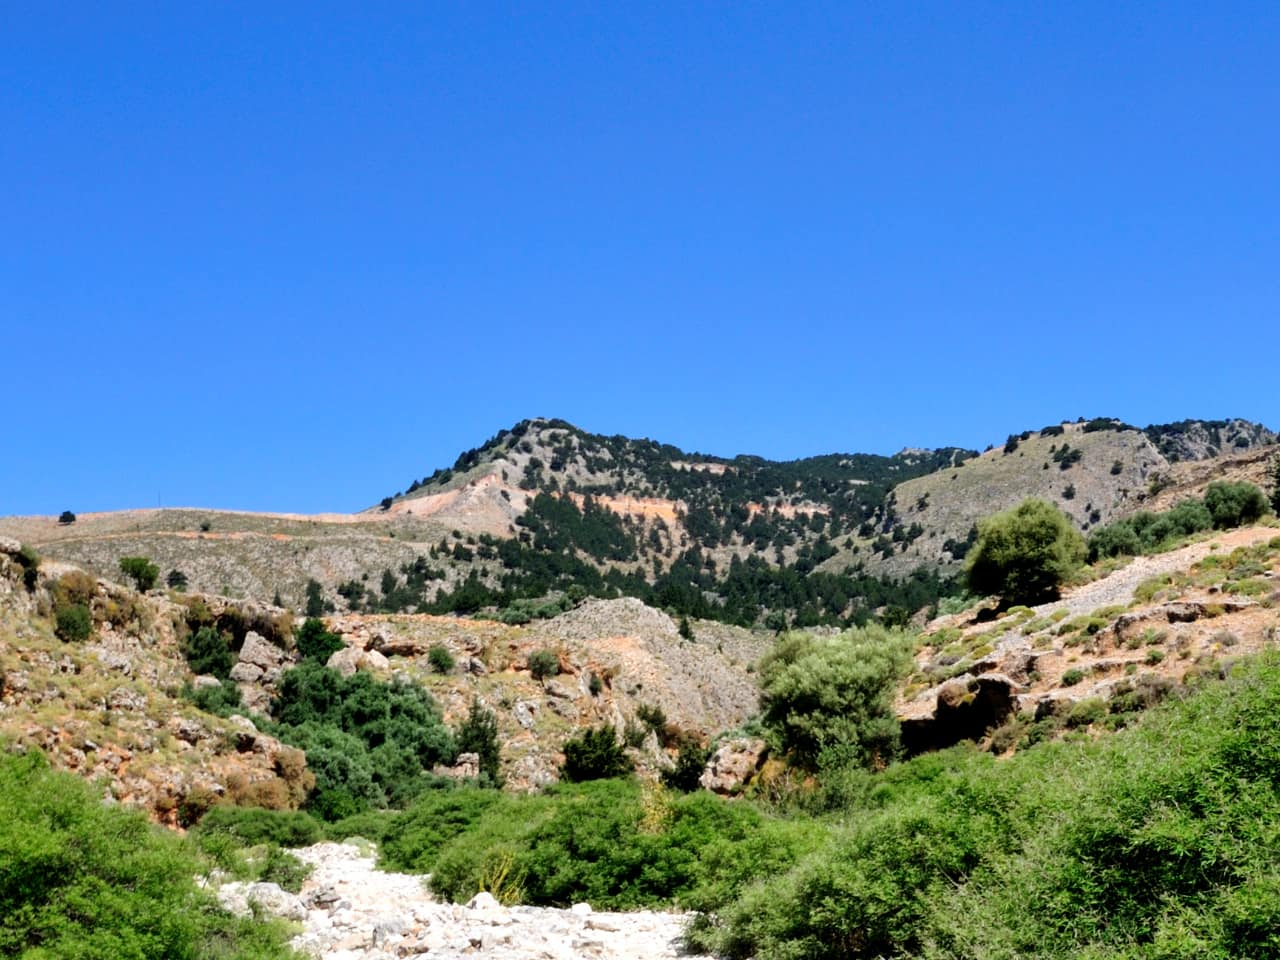 imbros gorge south chania crete, activities chania crete, hiking imbros gorge chania